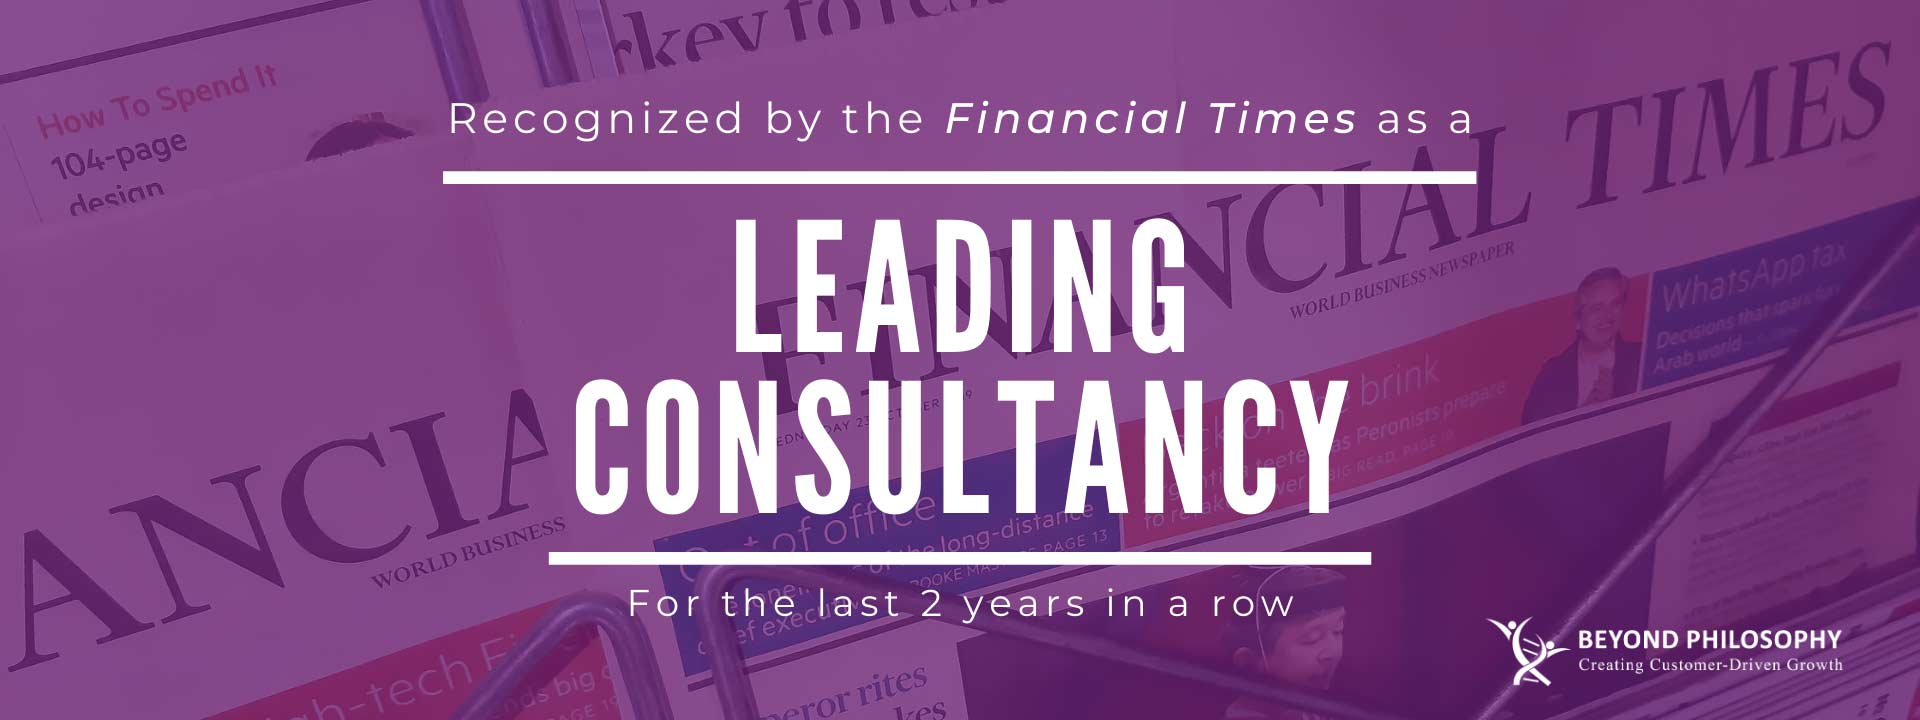 recognized by the Financial Times as a leading consultancy for the last 3 years in a row